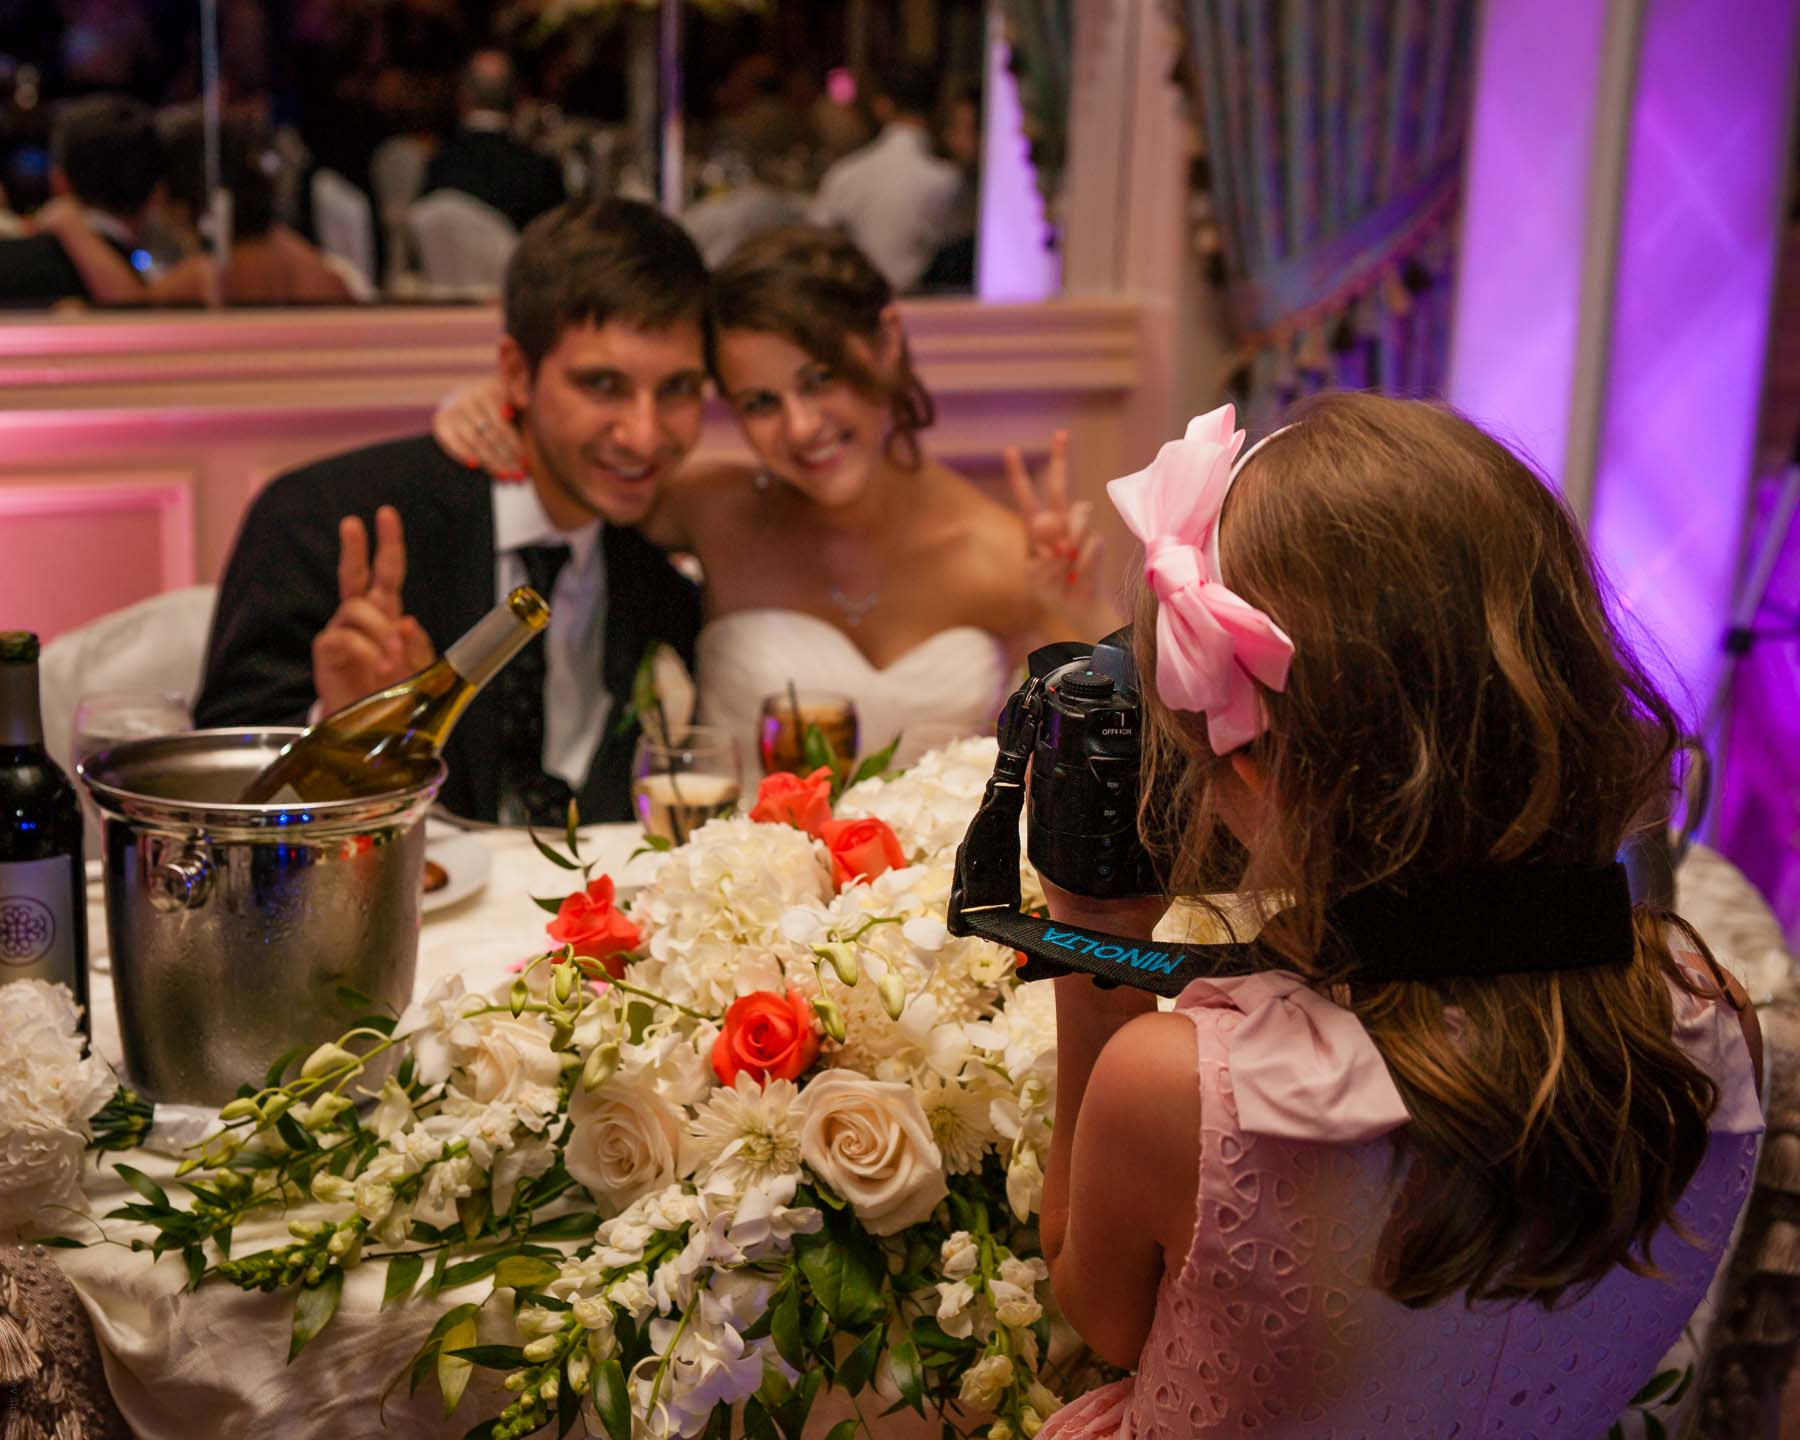 7 year old girl photographs the happy couple at a wedding with a full-frame DSLR Sony A900